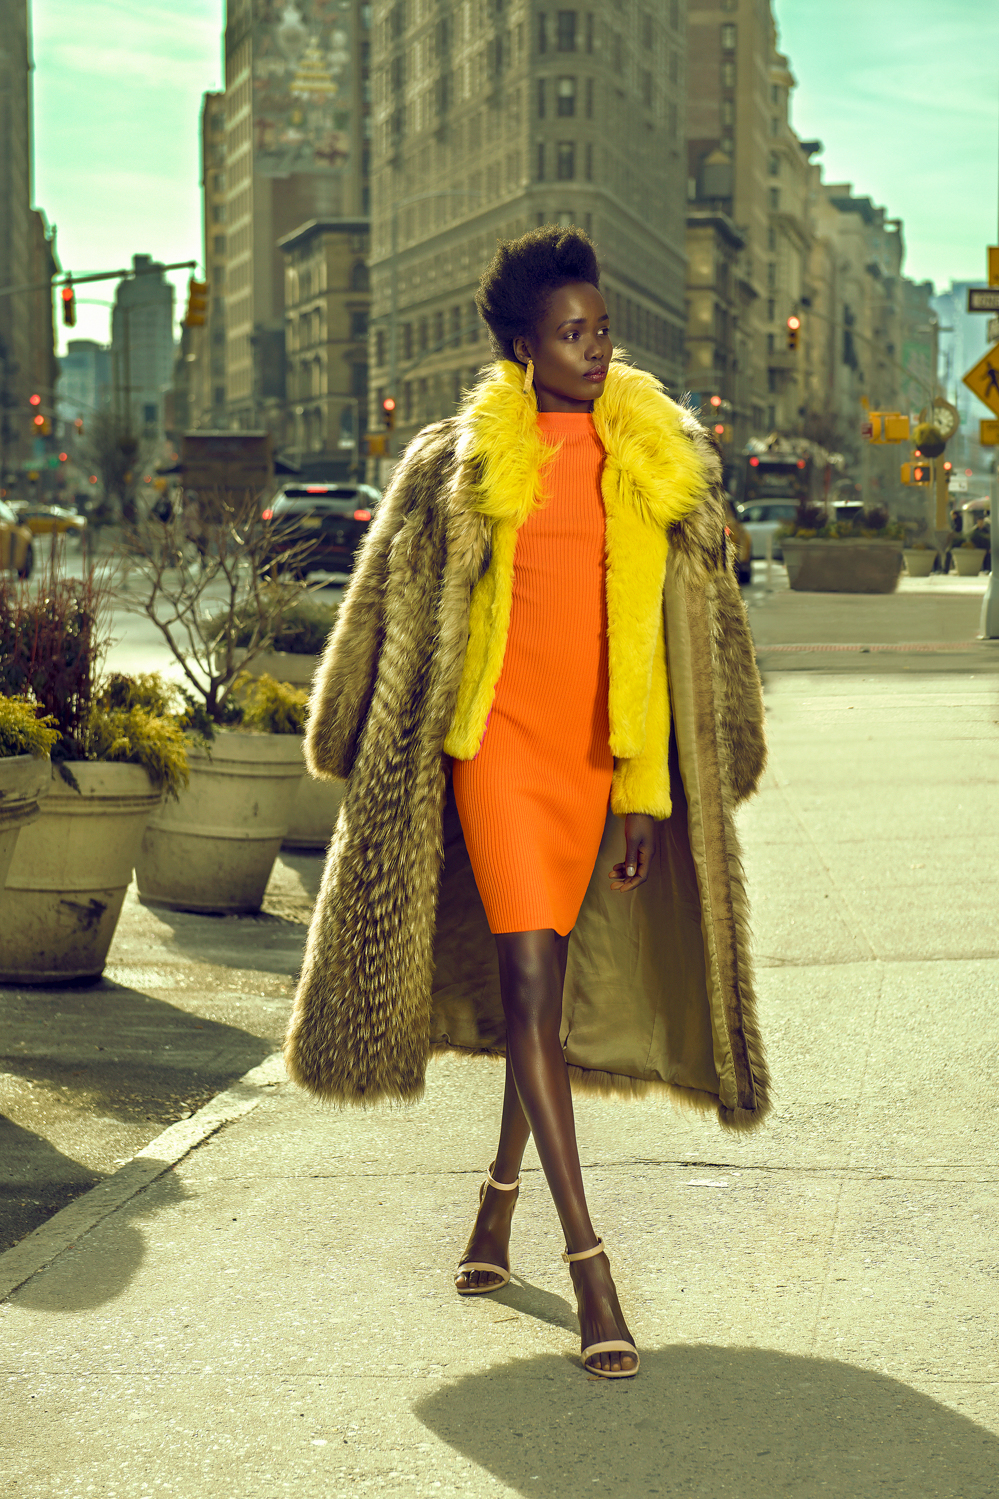 FAUX FUR COAT: VINTAGE FIND / FAUX FUR AGATA JACKET: GUESS / BLOUSE: NEIMAN MARCUS / DRESS: MICHAEL KORS / SHOES: CALVIN KLEIN / JEWELRY: MAURICIO CINFUENTES  GUILD MAGAZINE. COPYRIGHT 2018.